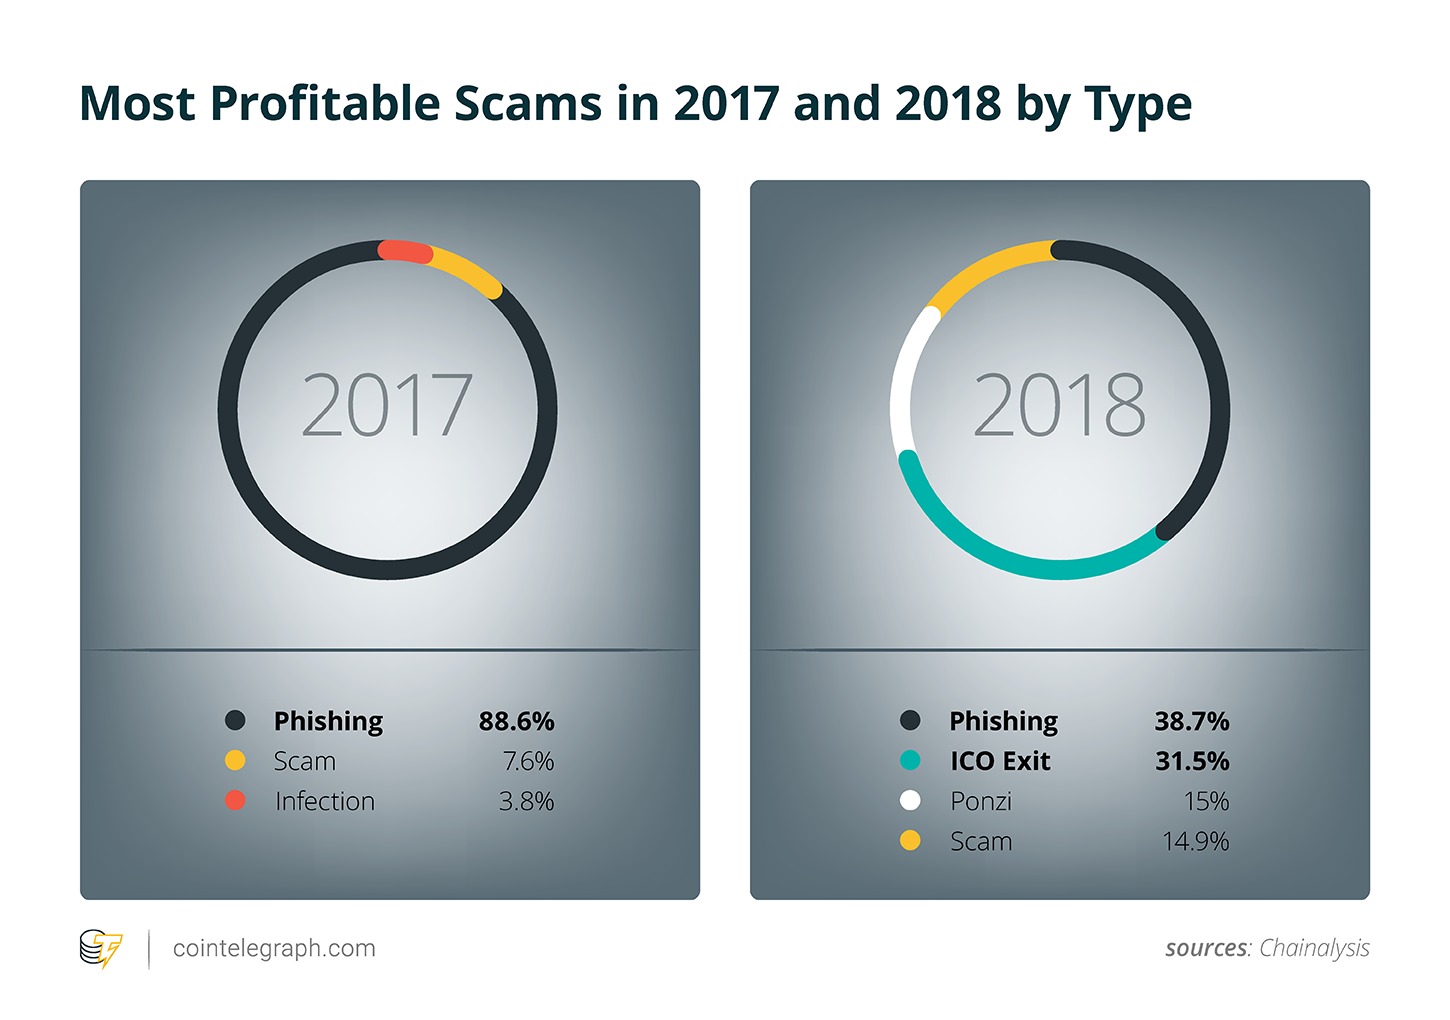 Most Profitable Scams in 2017 and 2018 by Type